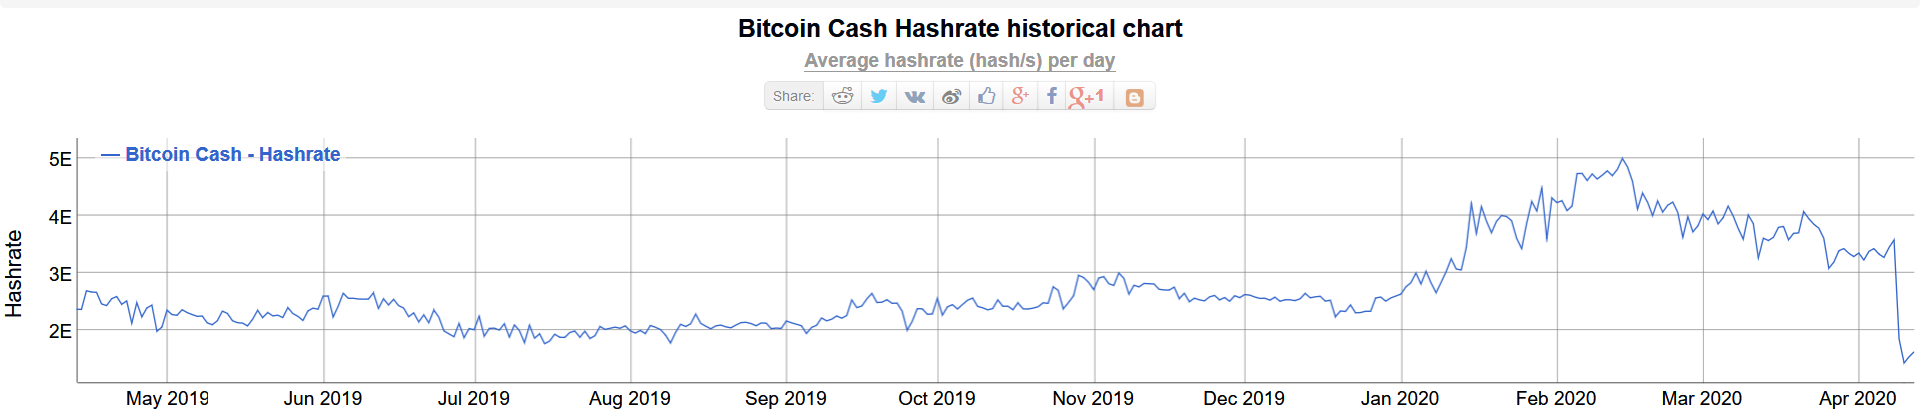 Bitcoin Cash hash rate chart